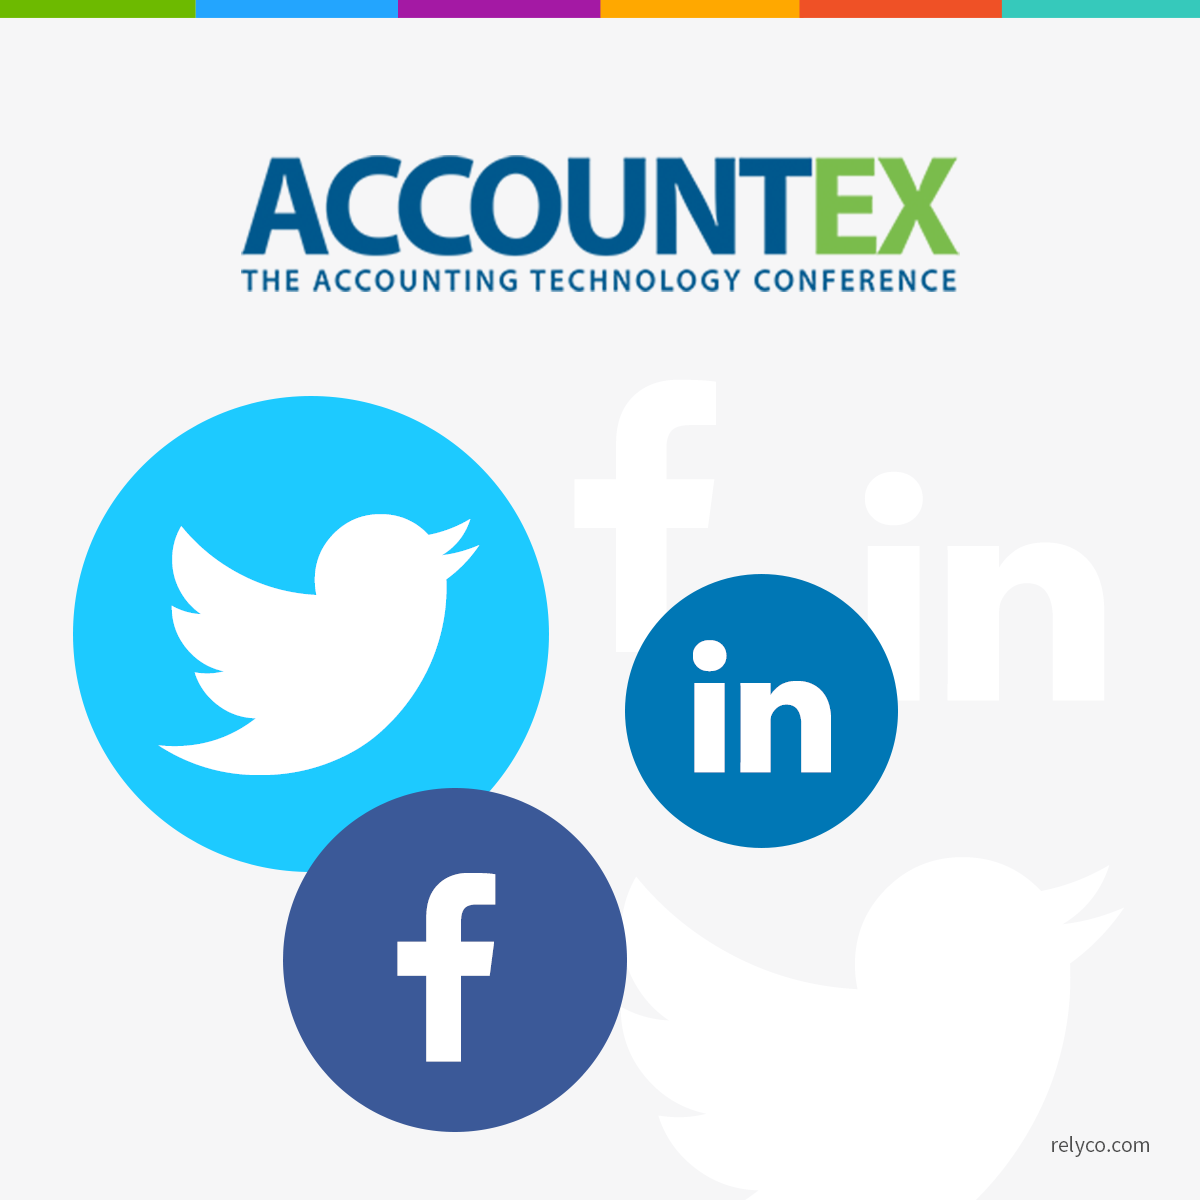 The Attendee's Social Media Guide to Accountex 2016